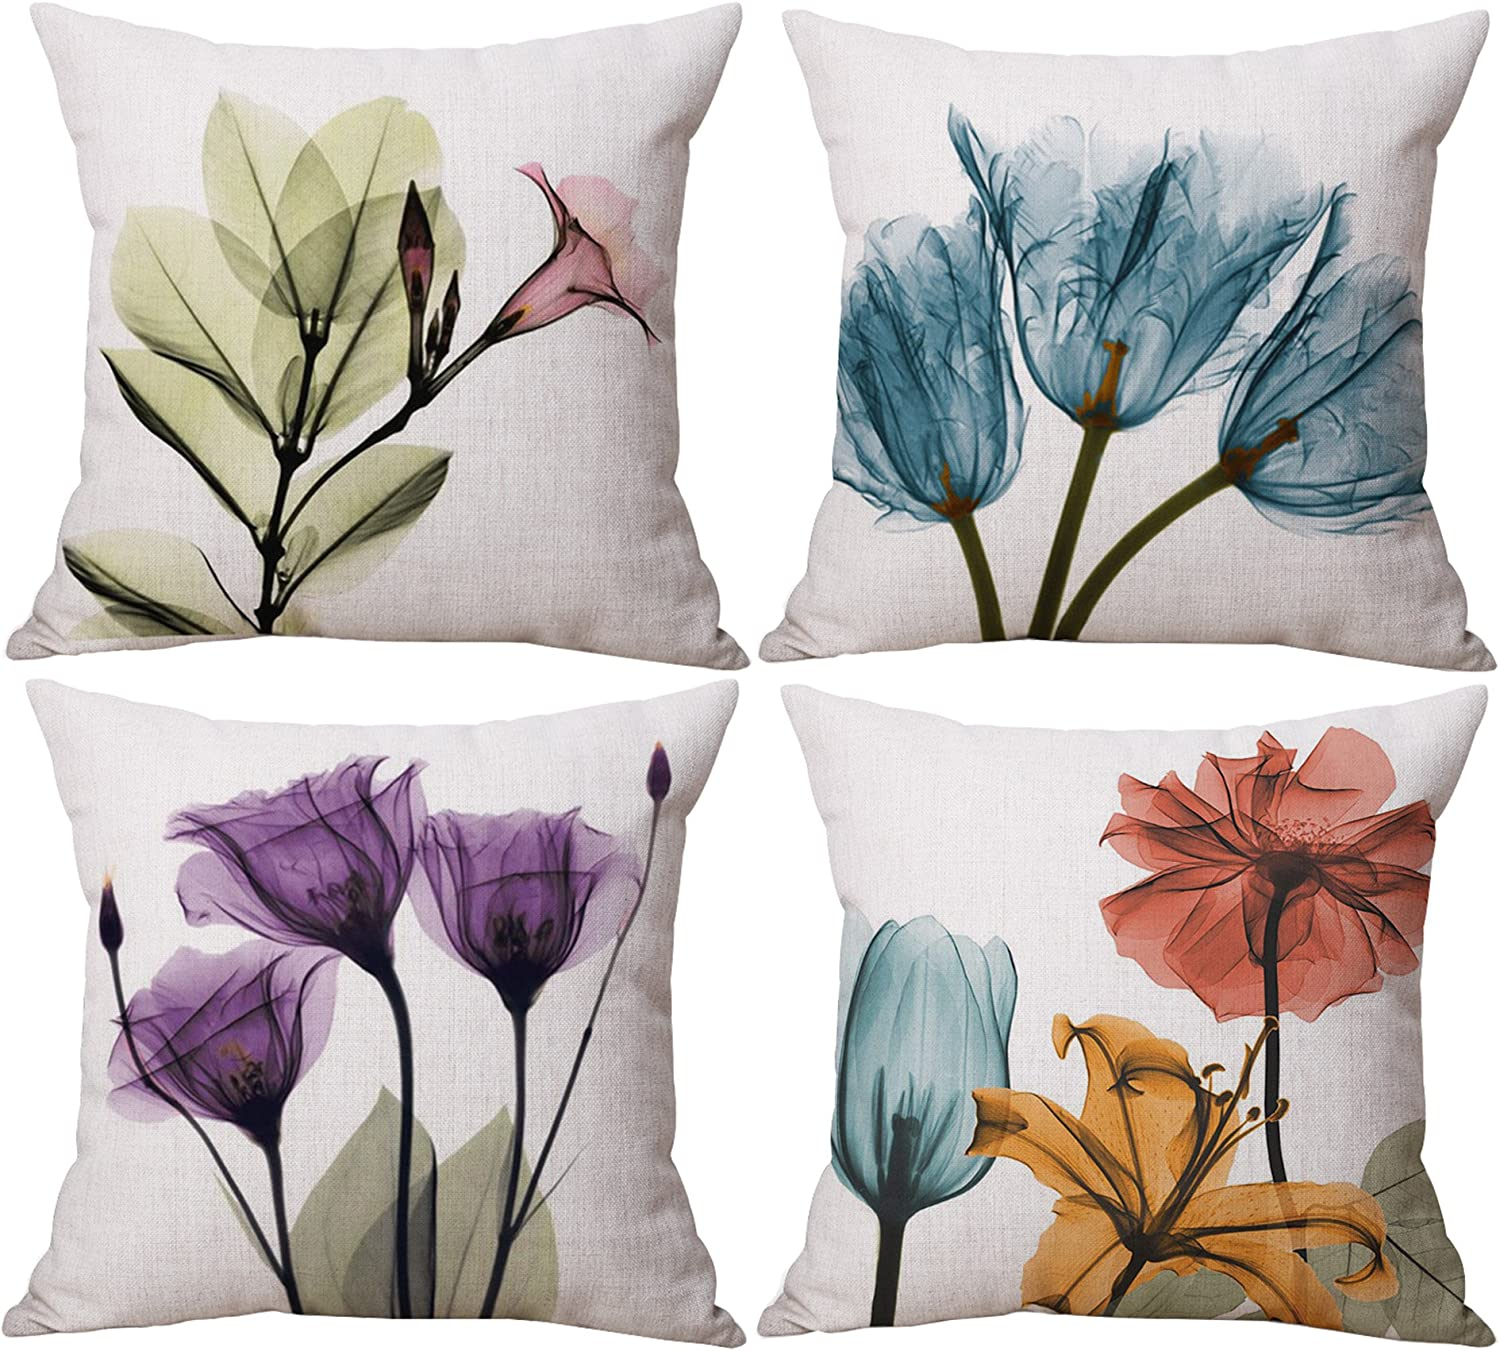 Amazon Com Geepro 18 X 18 Inch Painting Flower Throw Pillow Cover Set Decorative Floral Cushion Covers Set Of 4 Purple Home Kitchen